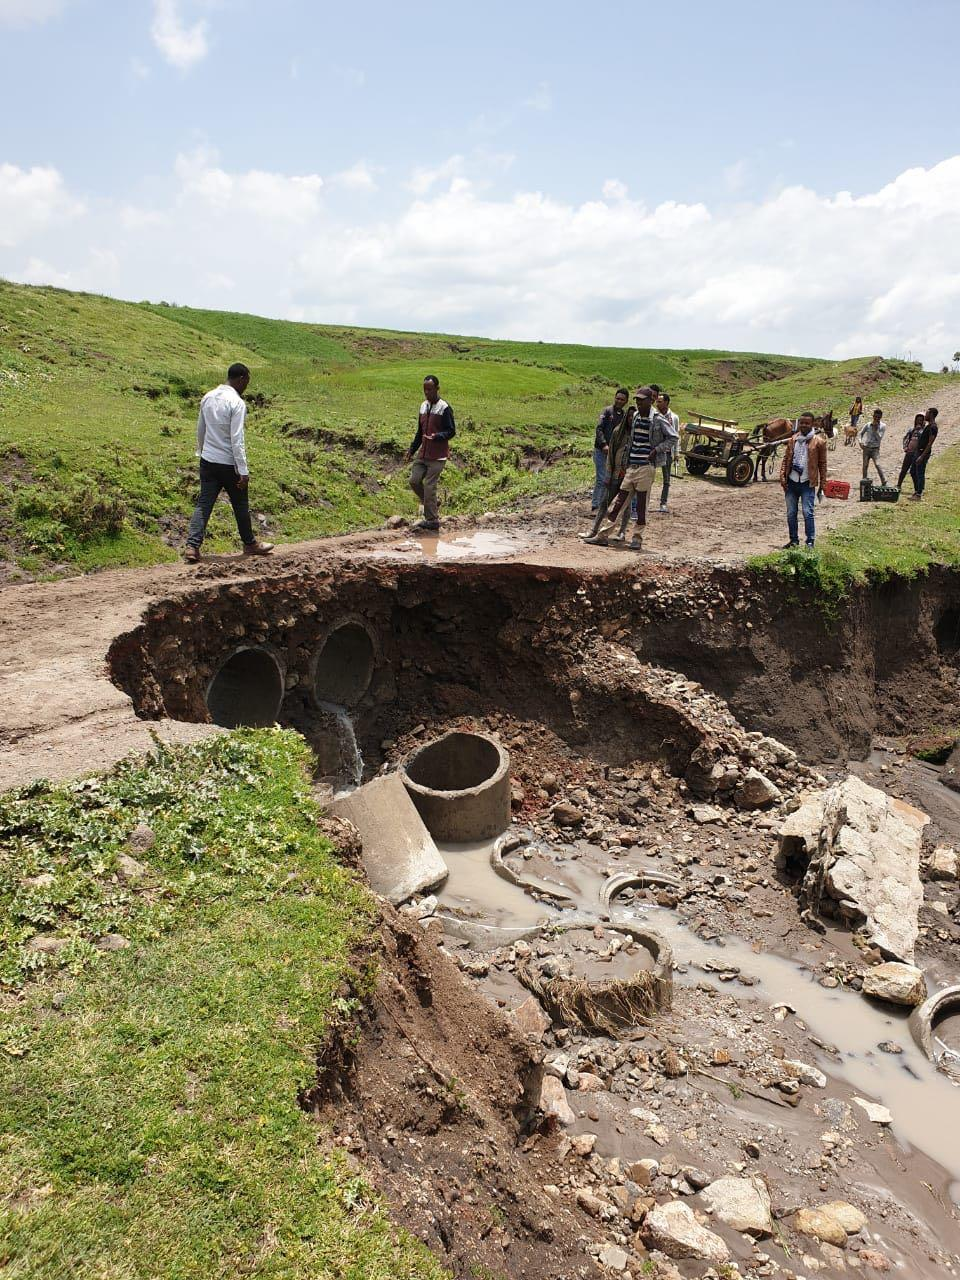 The road from Addis Ababa, Ethiopia, leading to the crash site of Ethiopian Airlines Flight 302. Credit: Clifford Law Offices